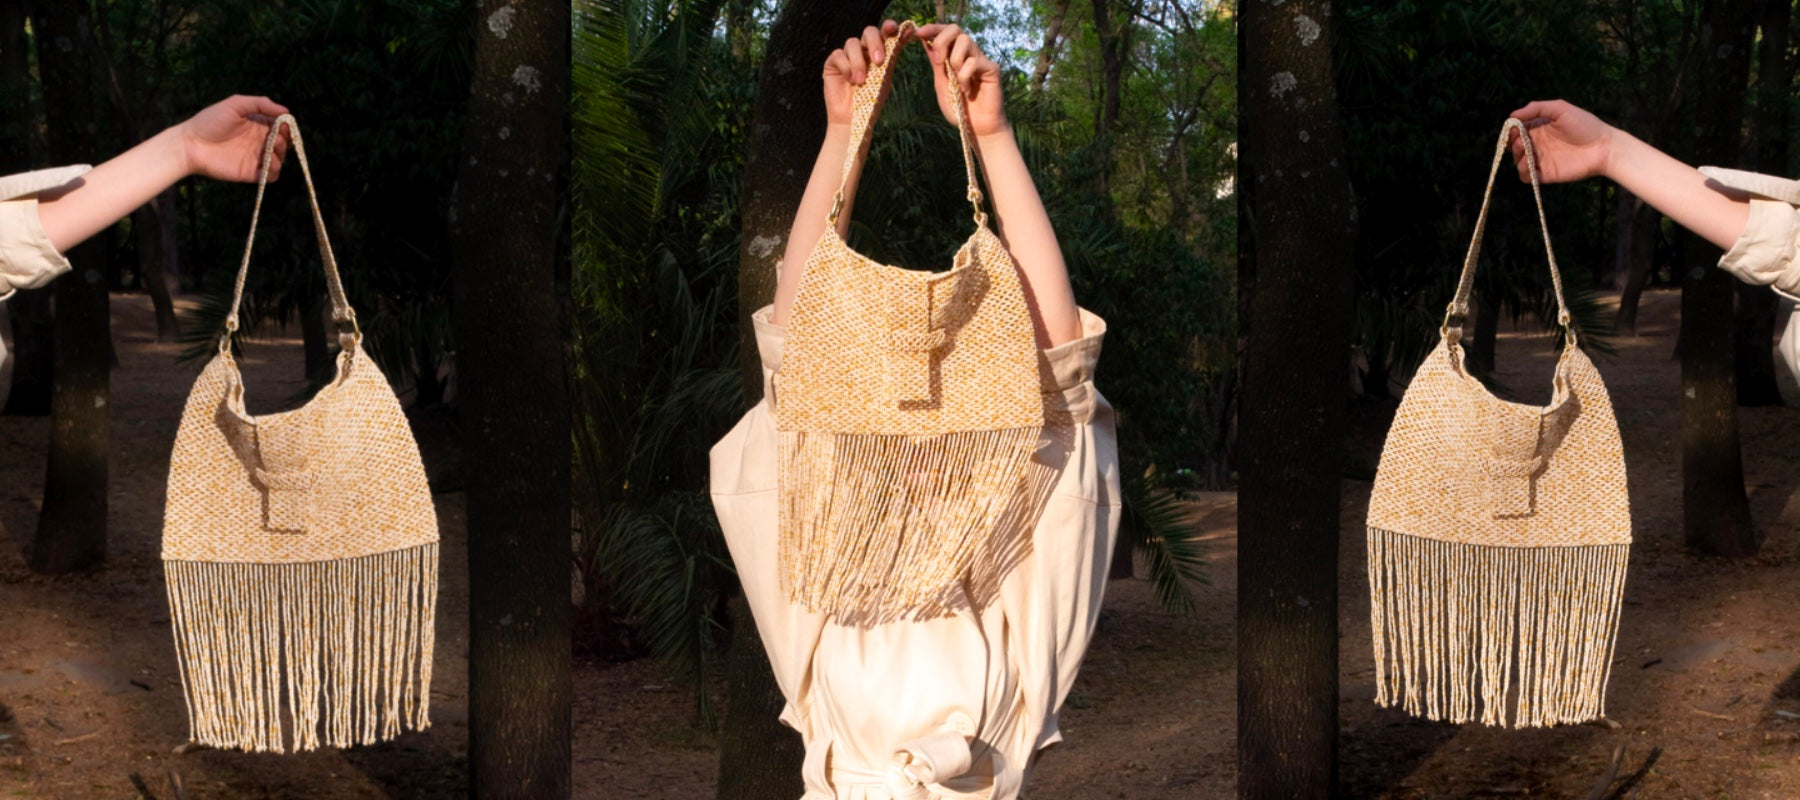 Picture is split in three parts showing the Fringe Flap beaded bag in color Sand. Background is trees in a park and the model is having the bag in her hand letting the fringes blow in the wind.